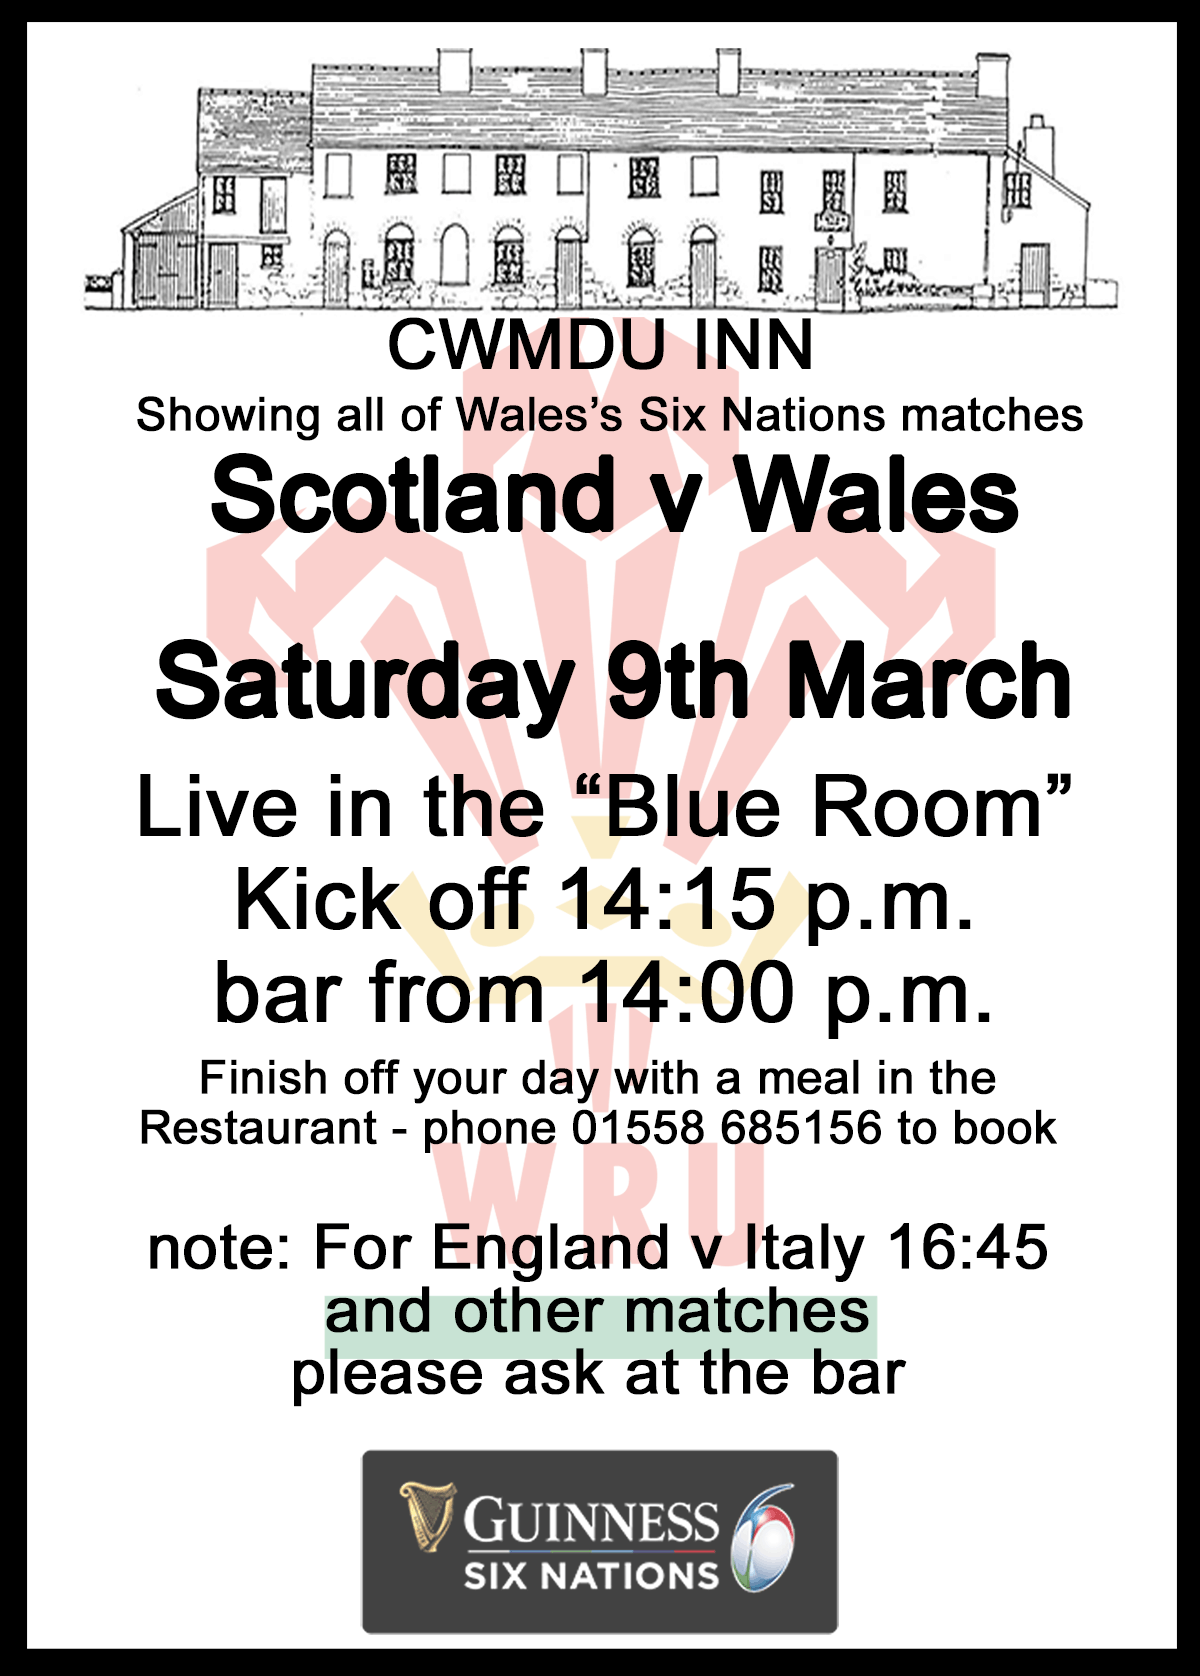 "Scotland v Wales Guinness 6 Nations Rugby 9th March showing in Cwmdu Inn ""Blue room"" - bar open from 14:00"